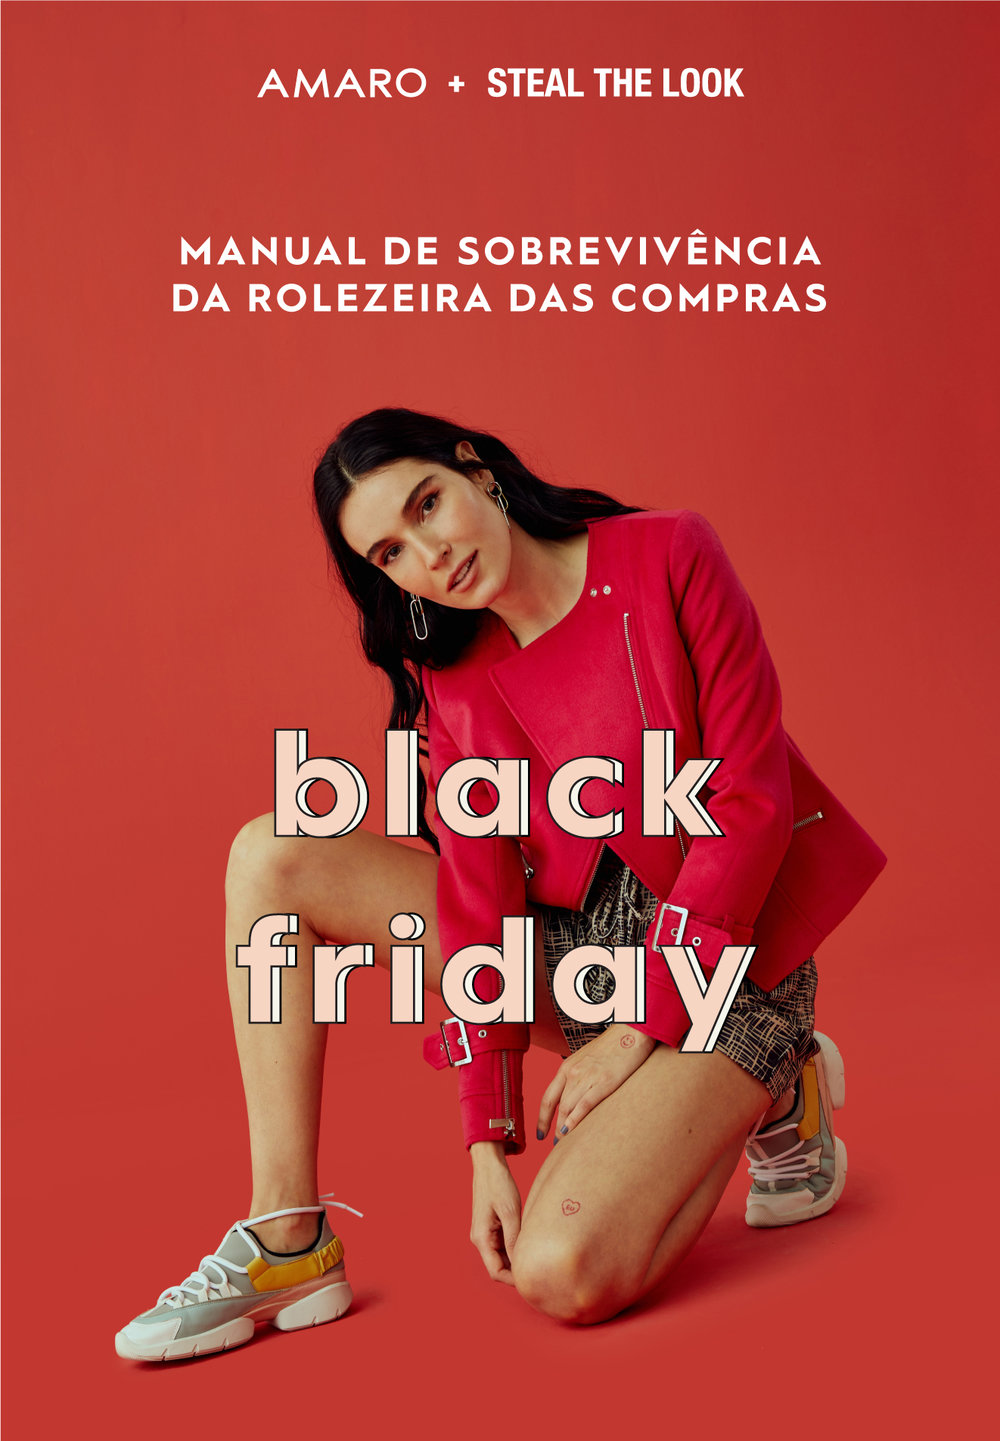 guia-black-friday-amaro-steal-the-look